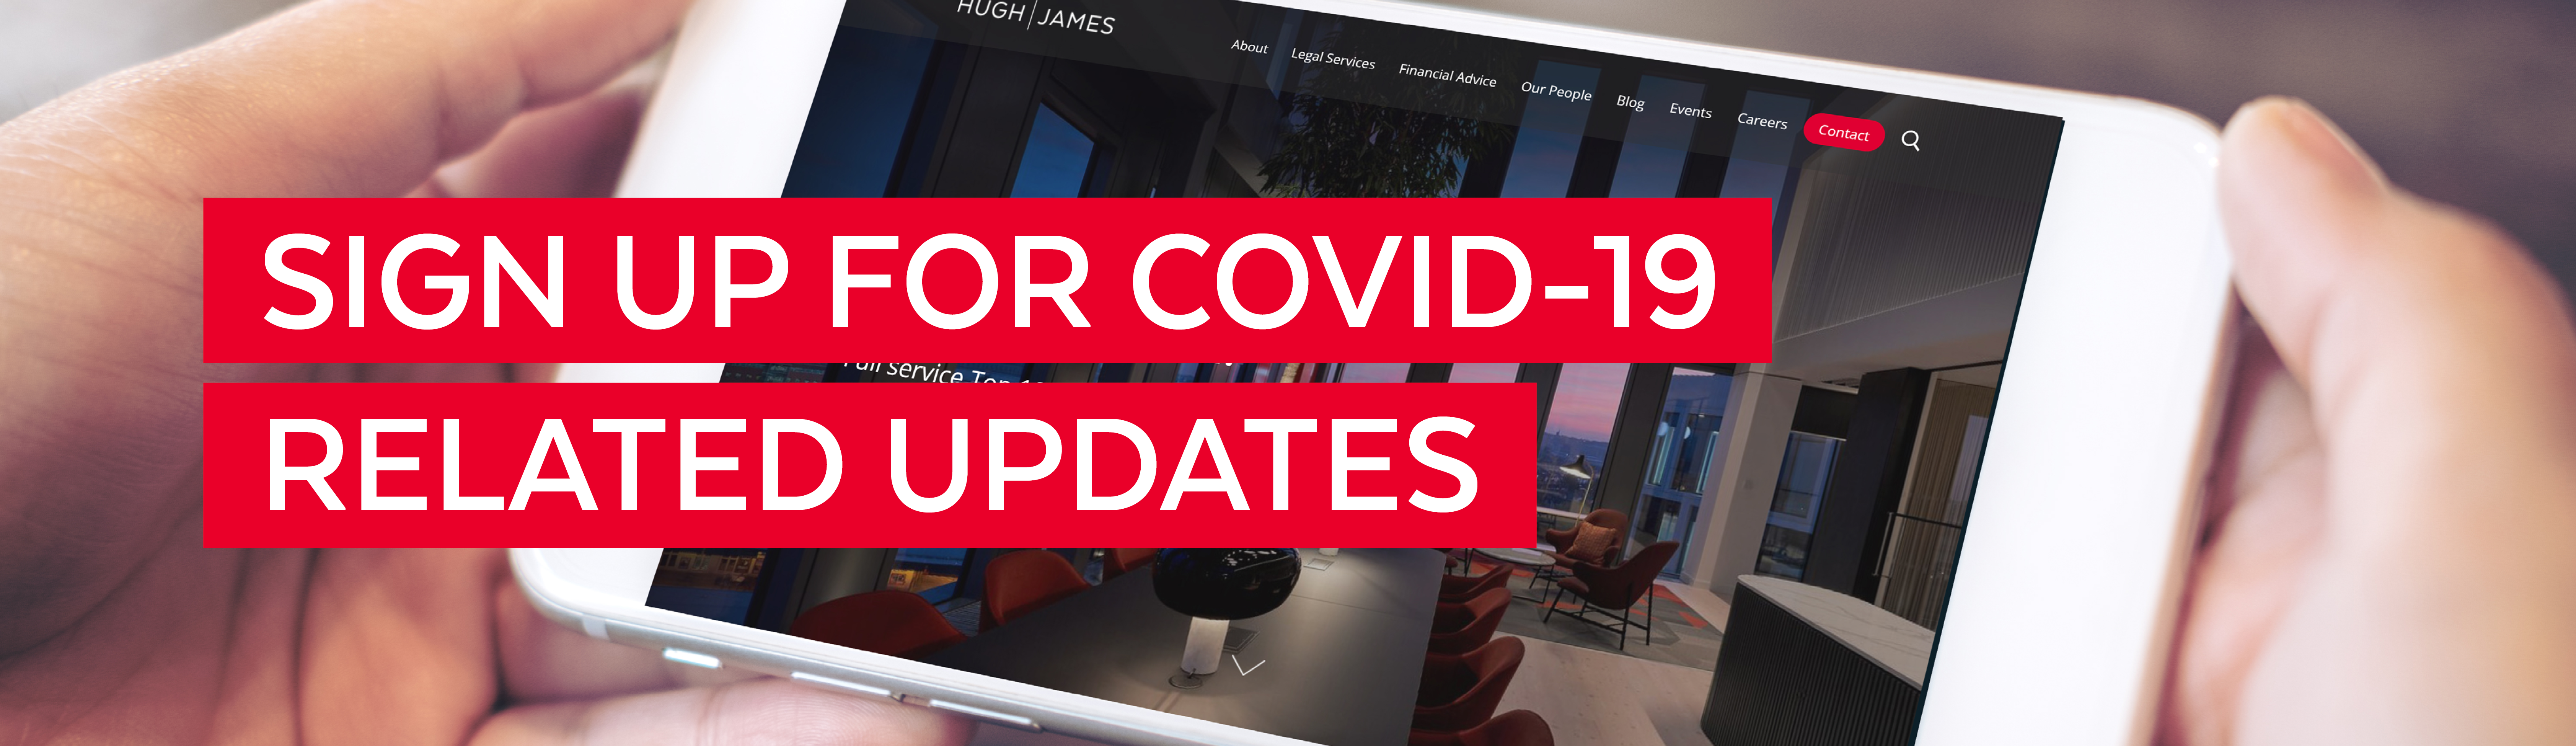 Sign up for COVID-19 related updates